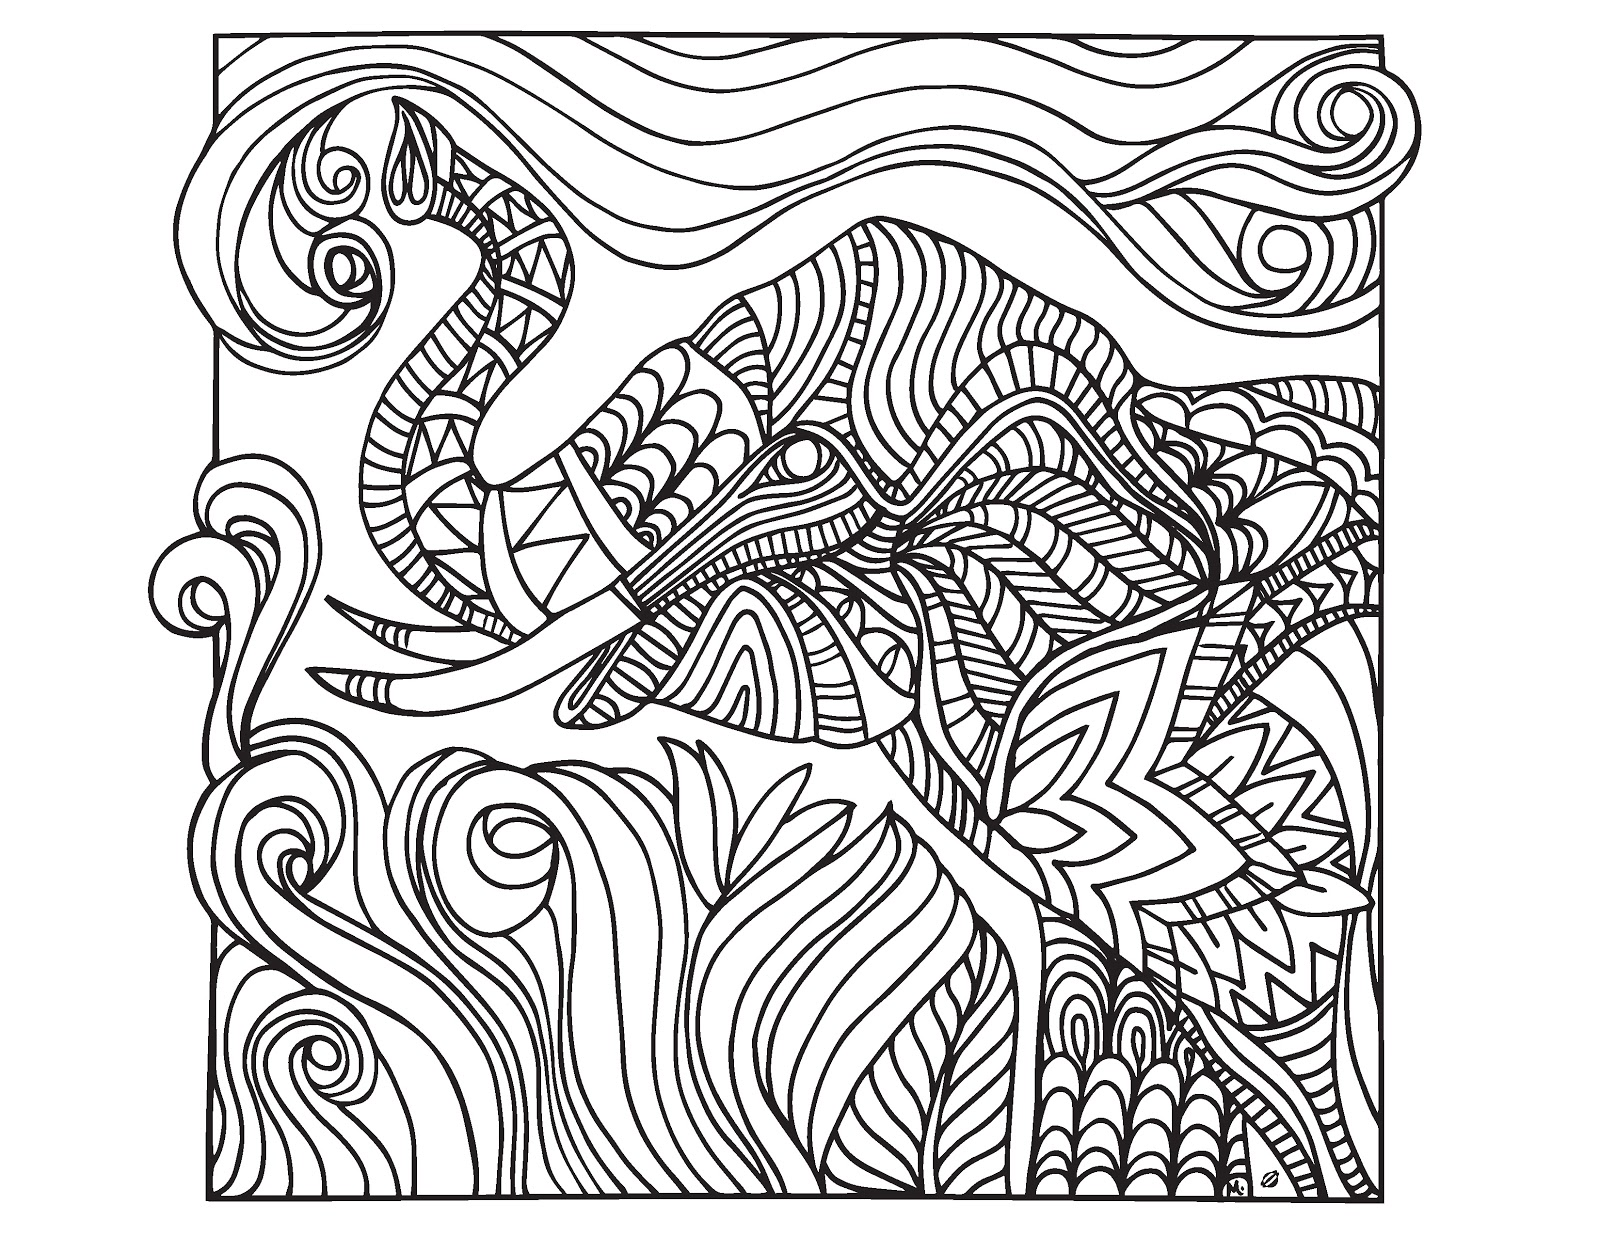 Relaxation Coloring Pages Az Coloring Pages Relaxation Coloring Pages